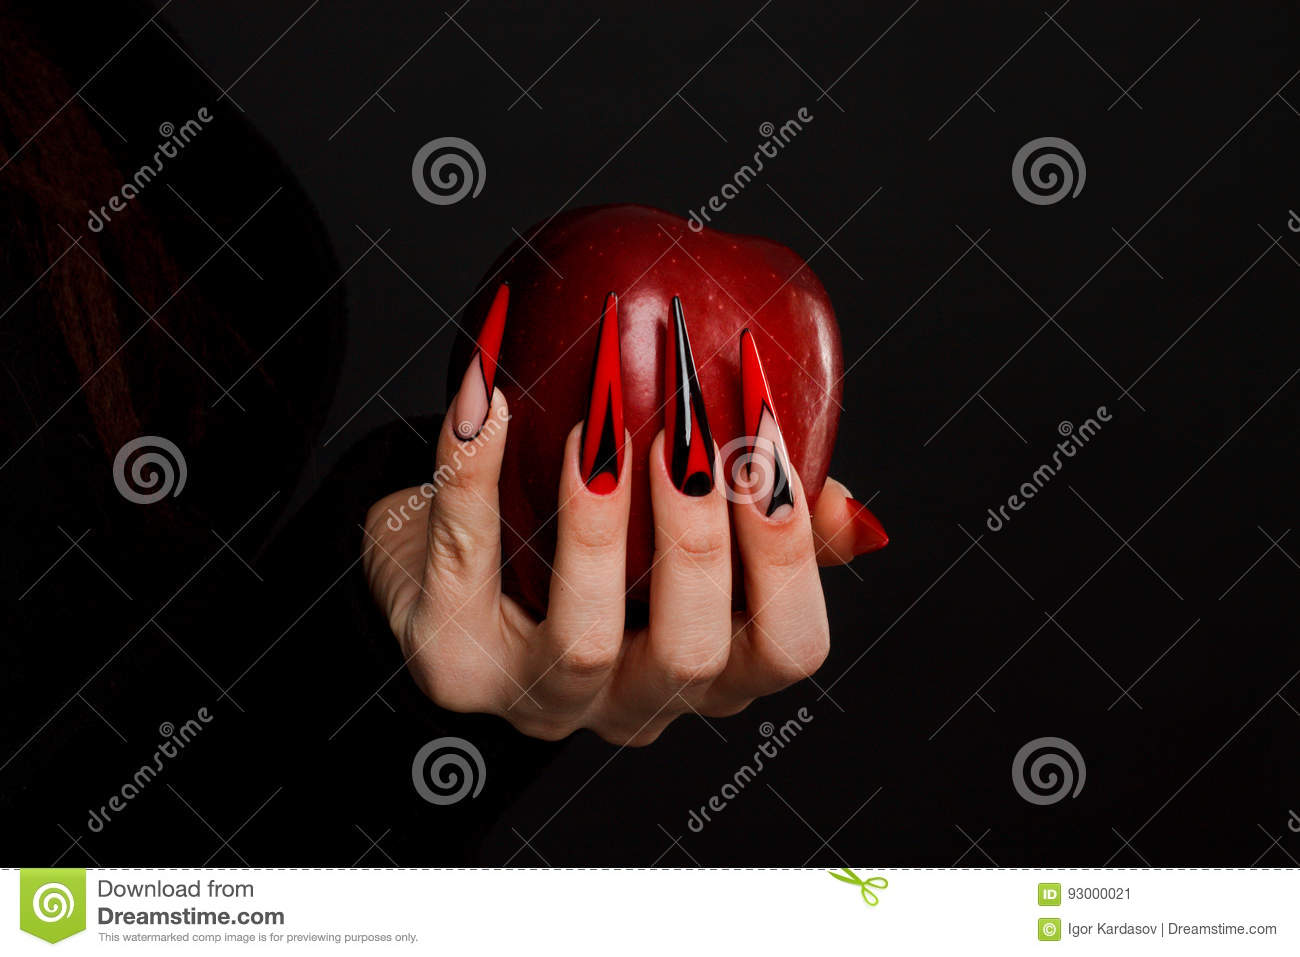 Hands with scary nails manicure holding poisoned red apple